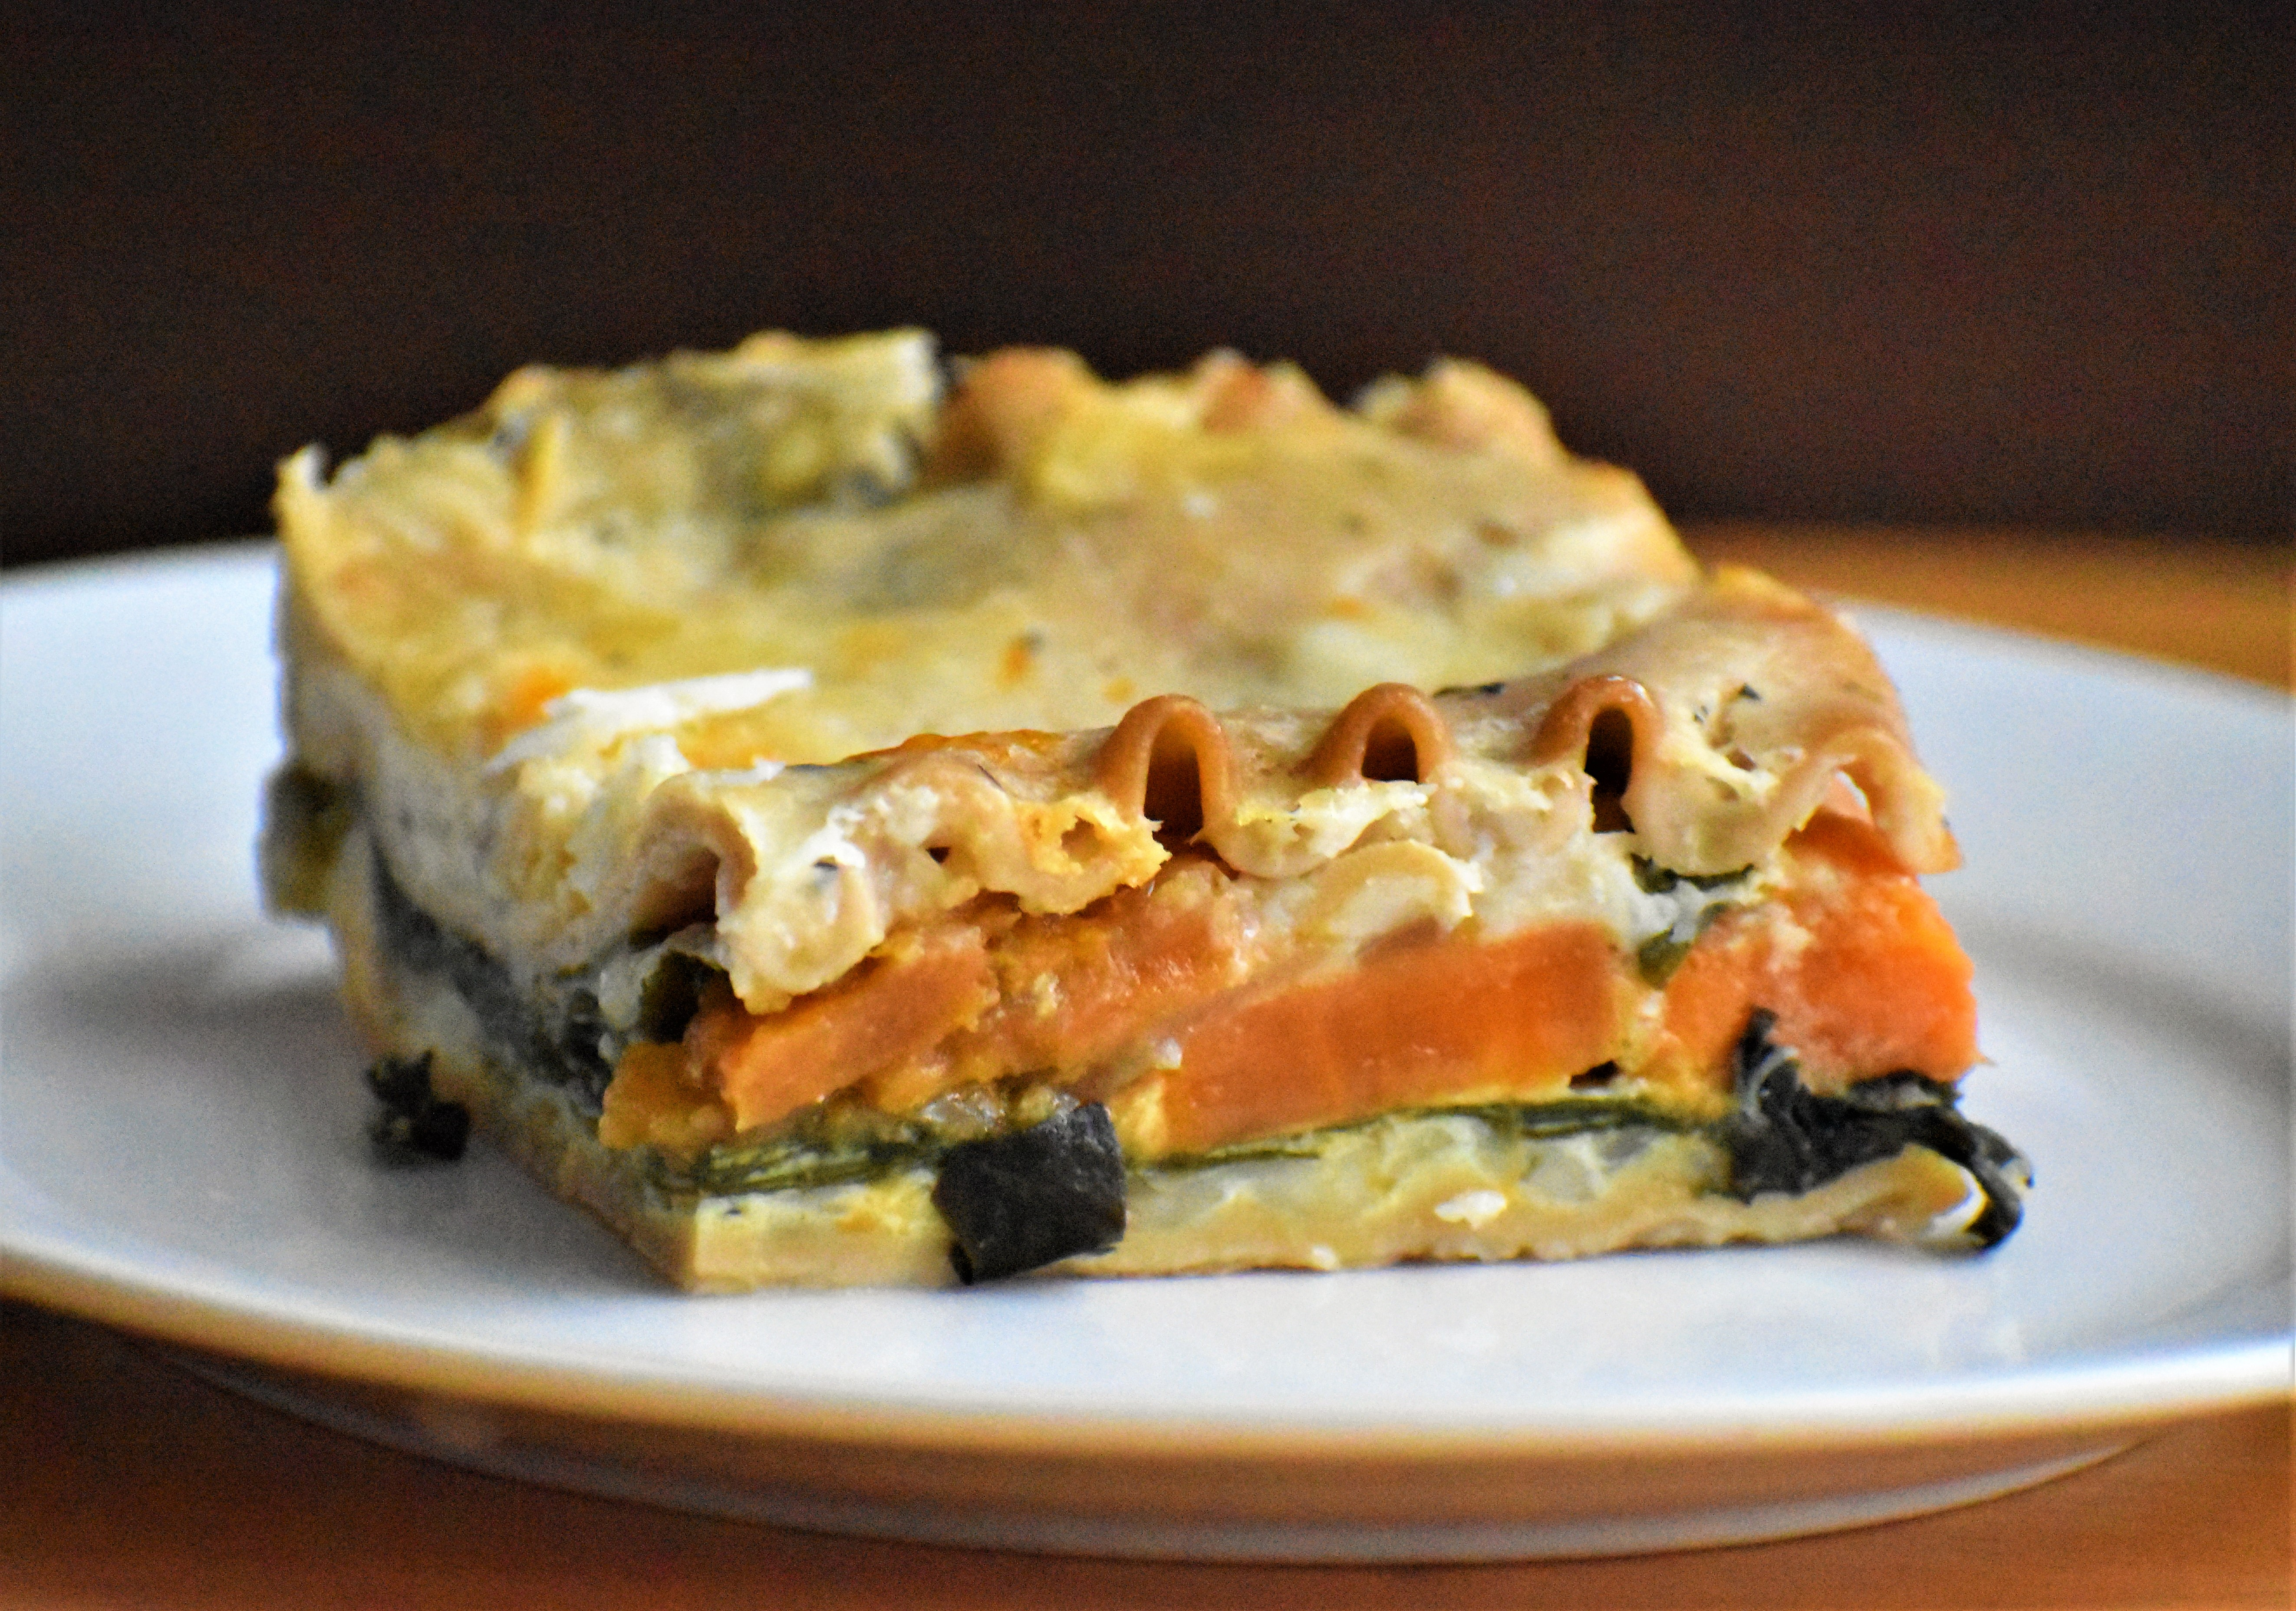 Seasonal veggies layer with creamy cheese sauce in this wintery lasagna that's perfect for vegetarians and meat-eaters alike. It's a one-dish meal, so you'll only need to serve with a side salad and a roll for sopping up the last bites of sauce.